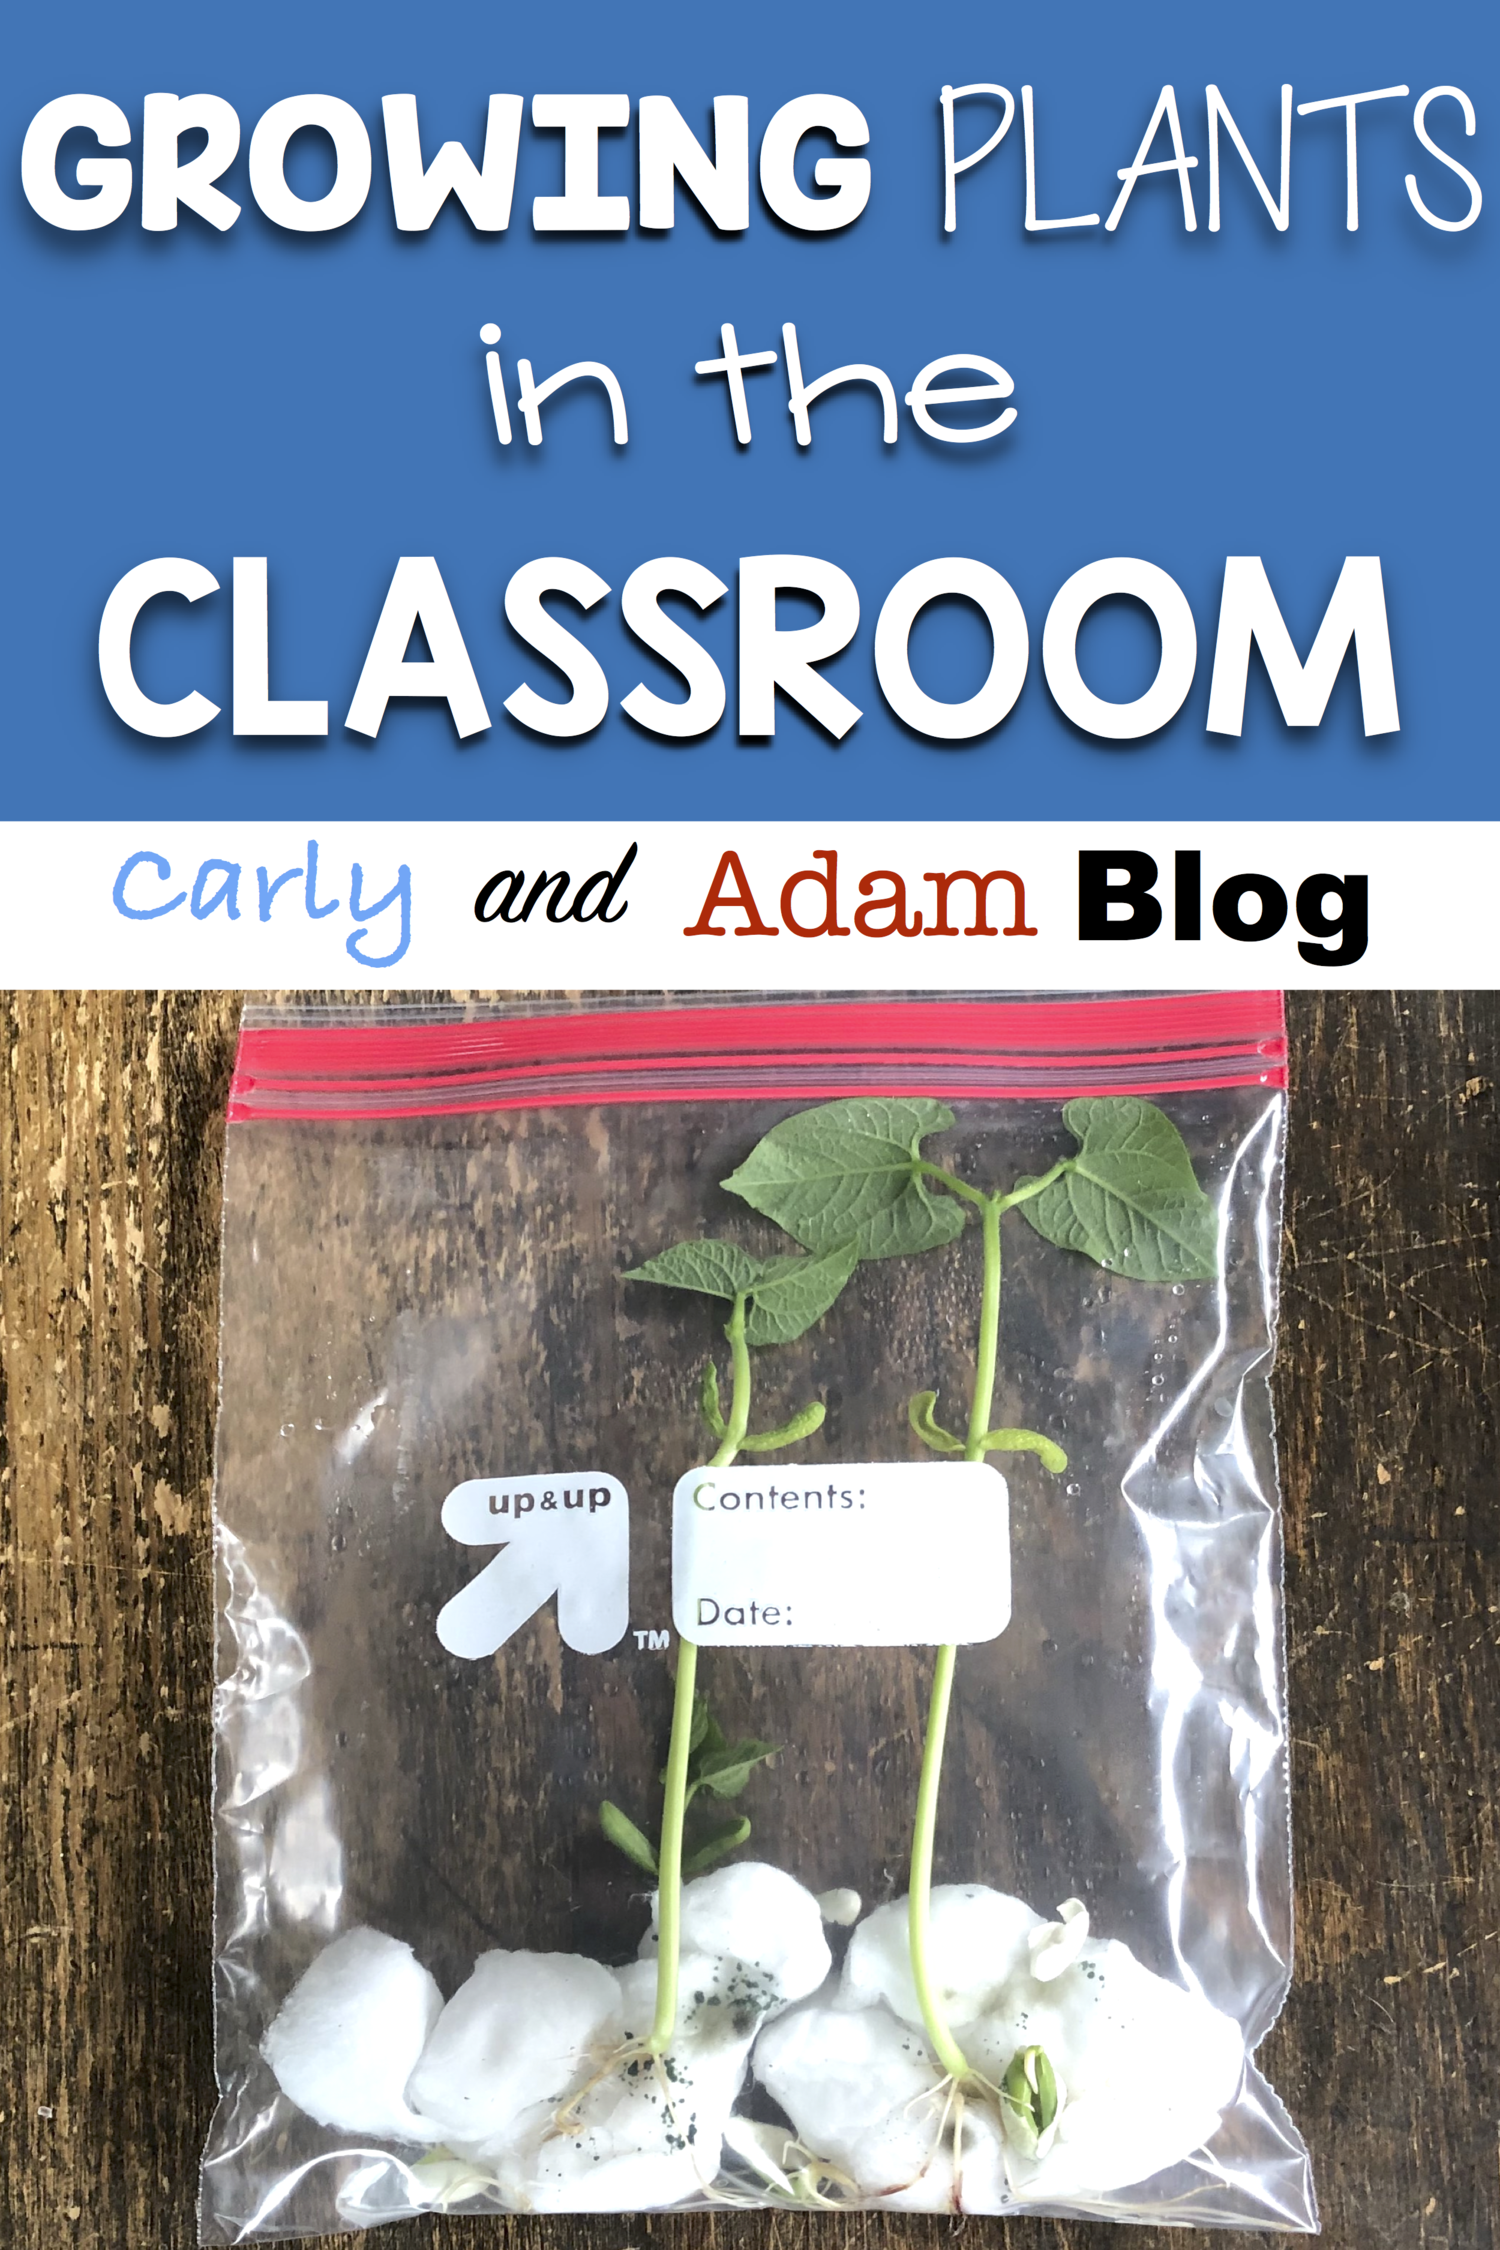 Growing Plants in the Classroom | Carly and Adam Blog Ideas, STEM